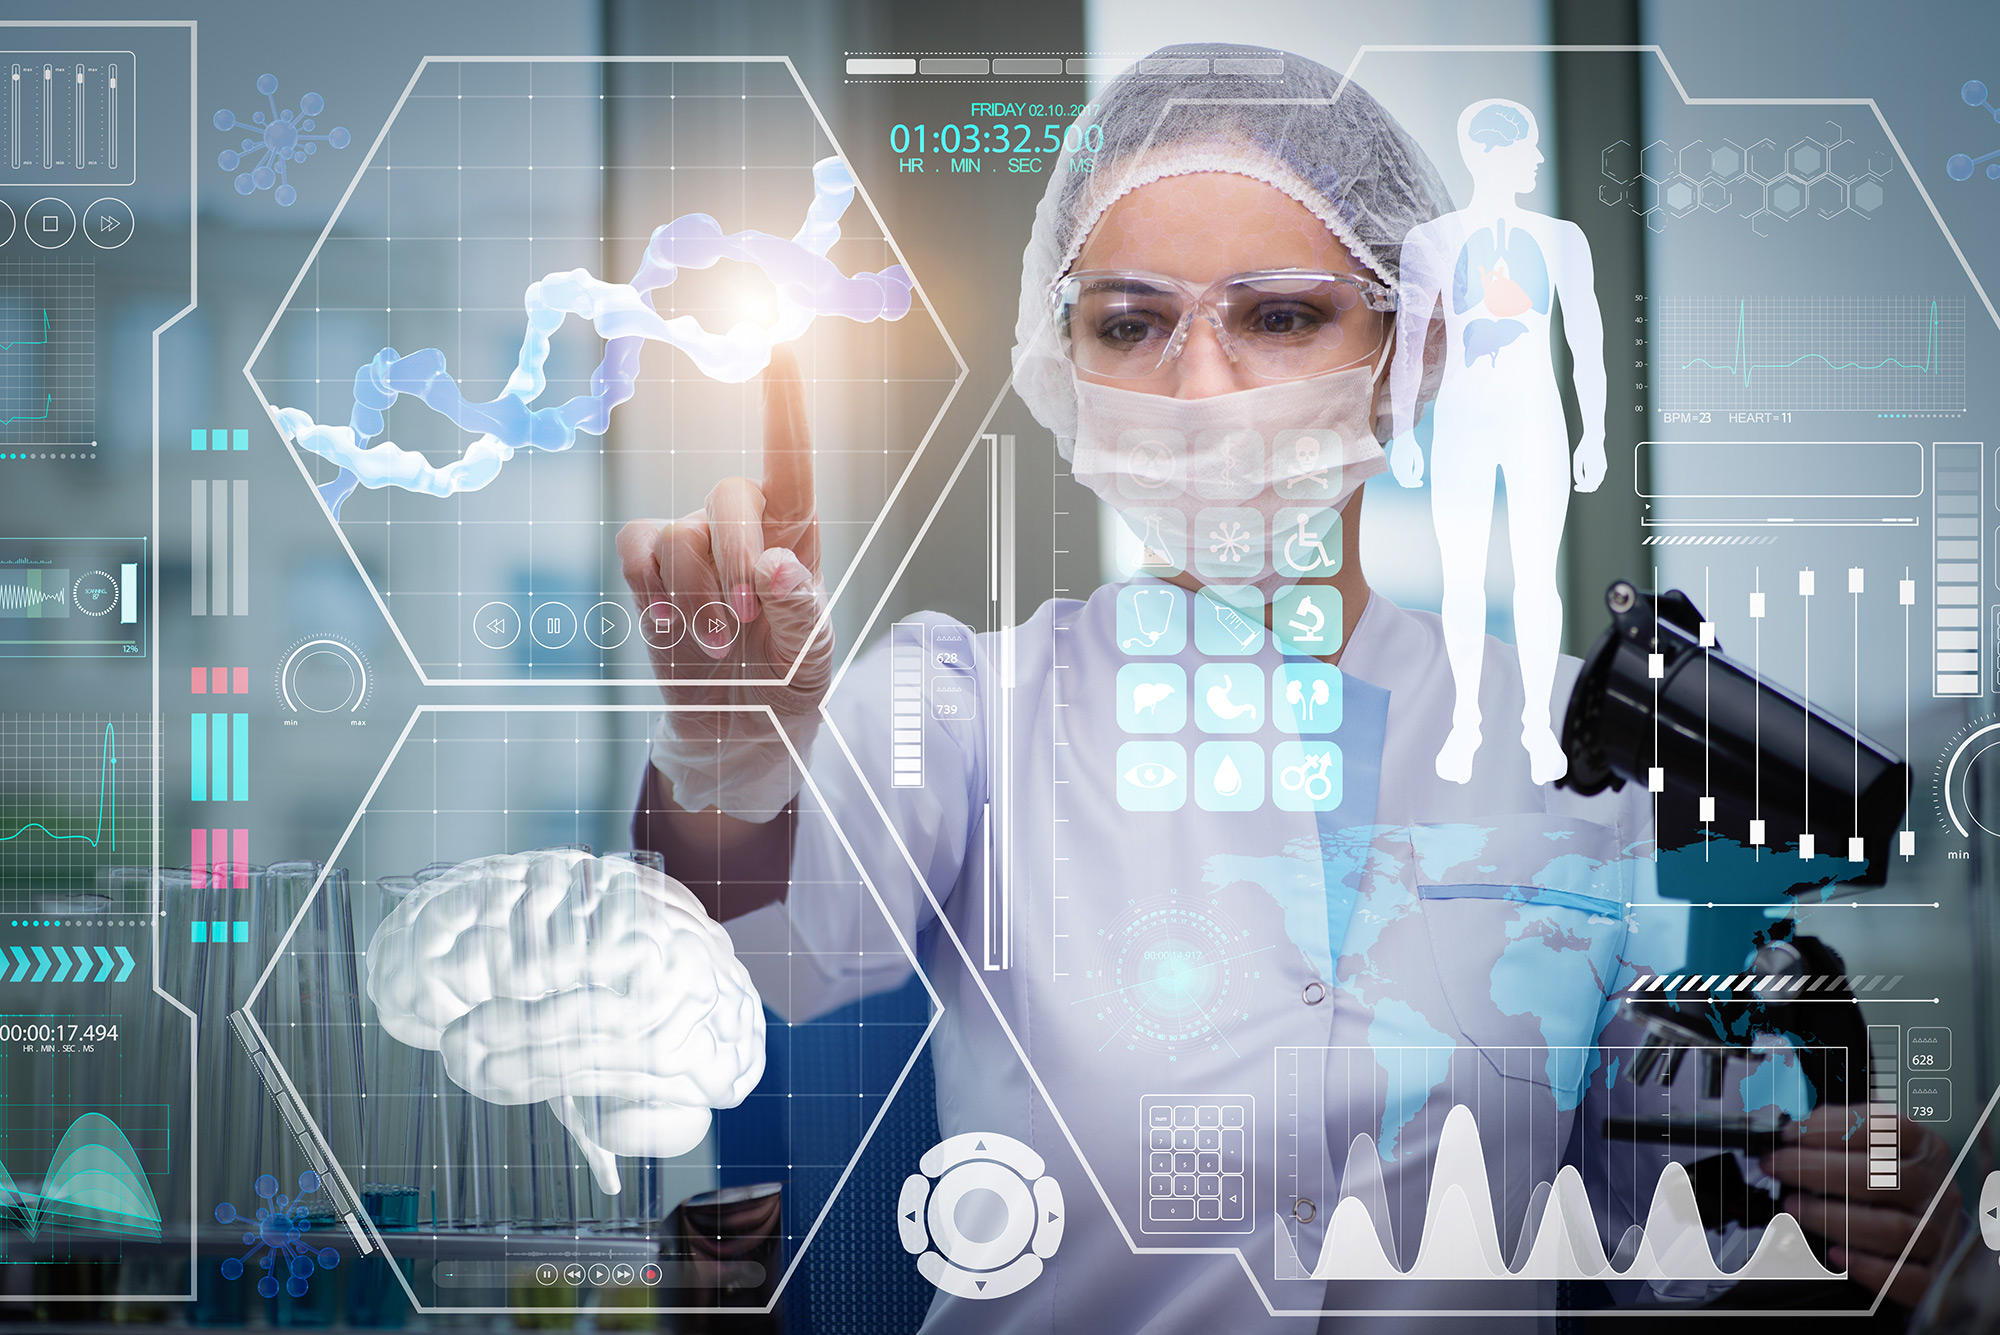 medicine medical ai health technology medizintechnik dati prevenzione salute come intelligenza artificiale certificado codem field grazie cambia medicina industry standards